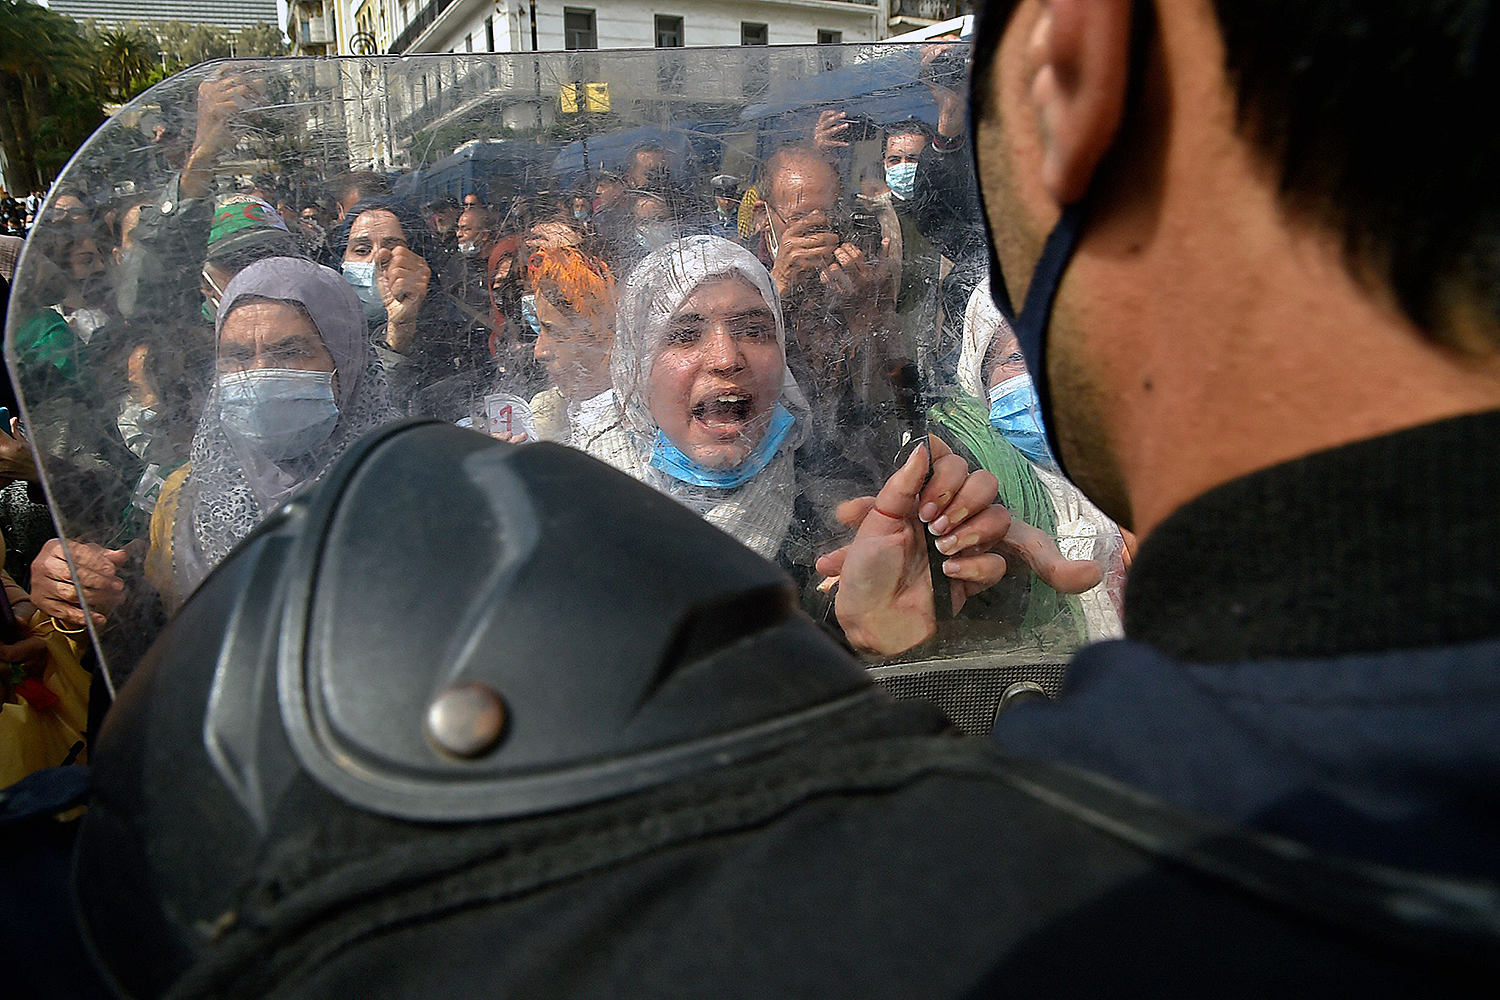 Algerian women chant slogans during an anti-government protest in Algiers on March 8. RYAD KRAMDI/AFP via Getty Images